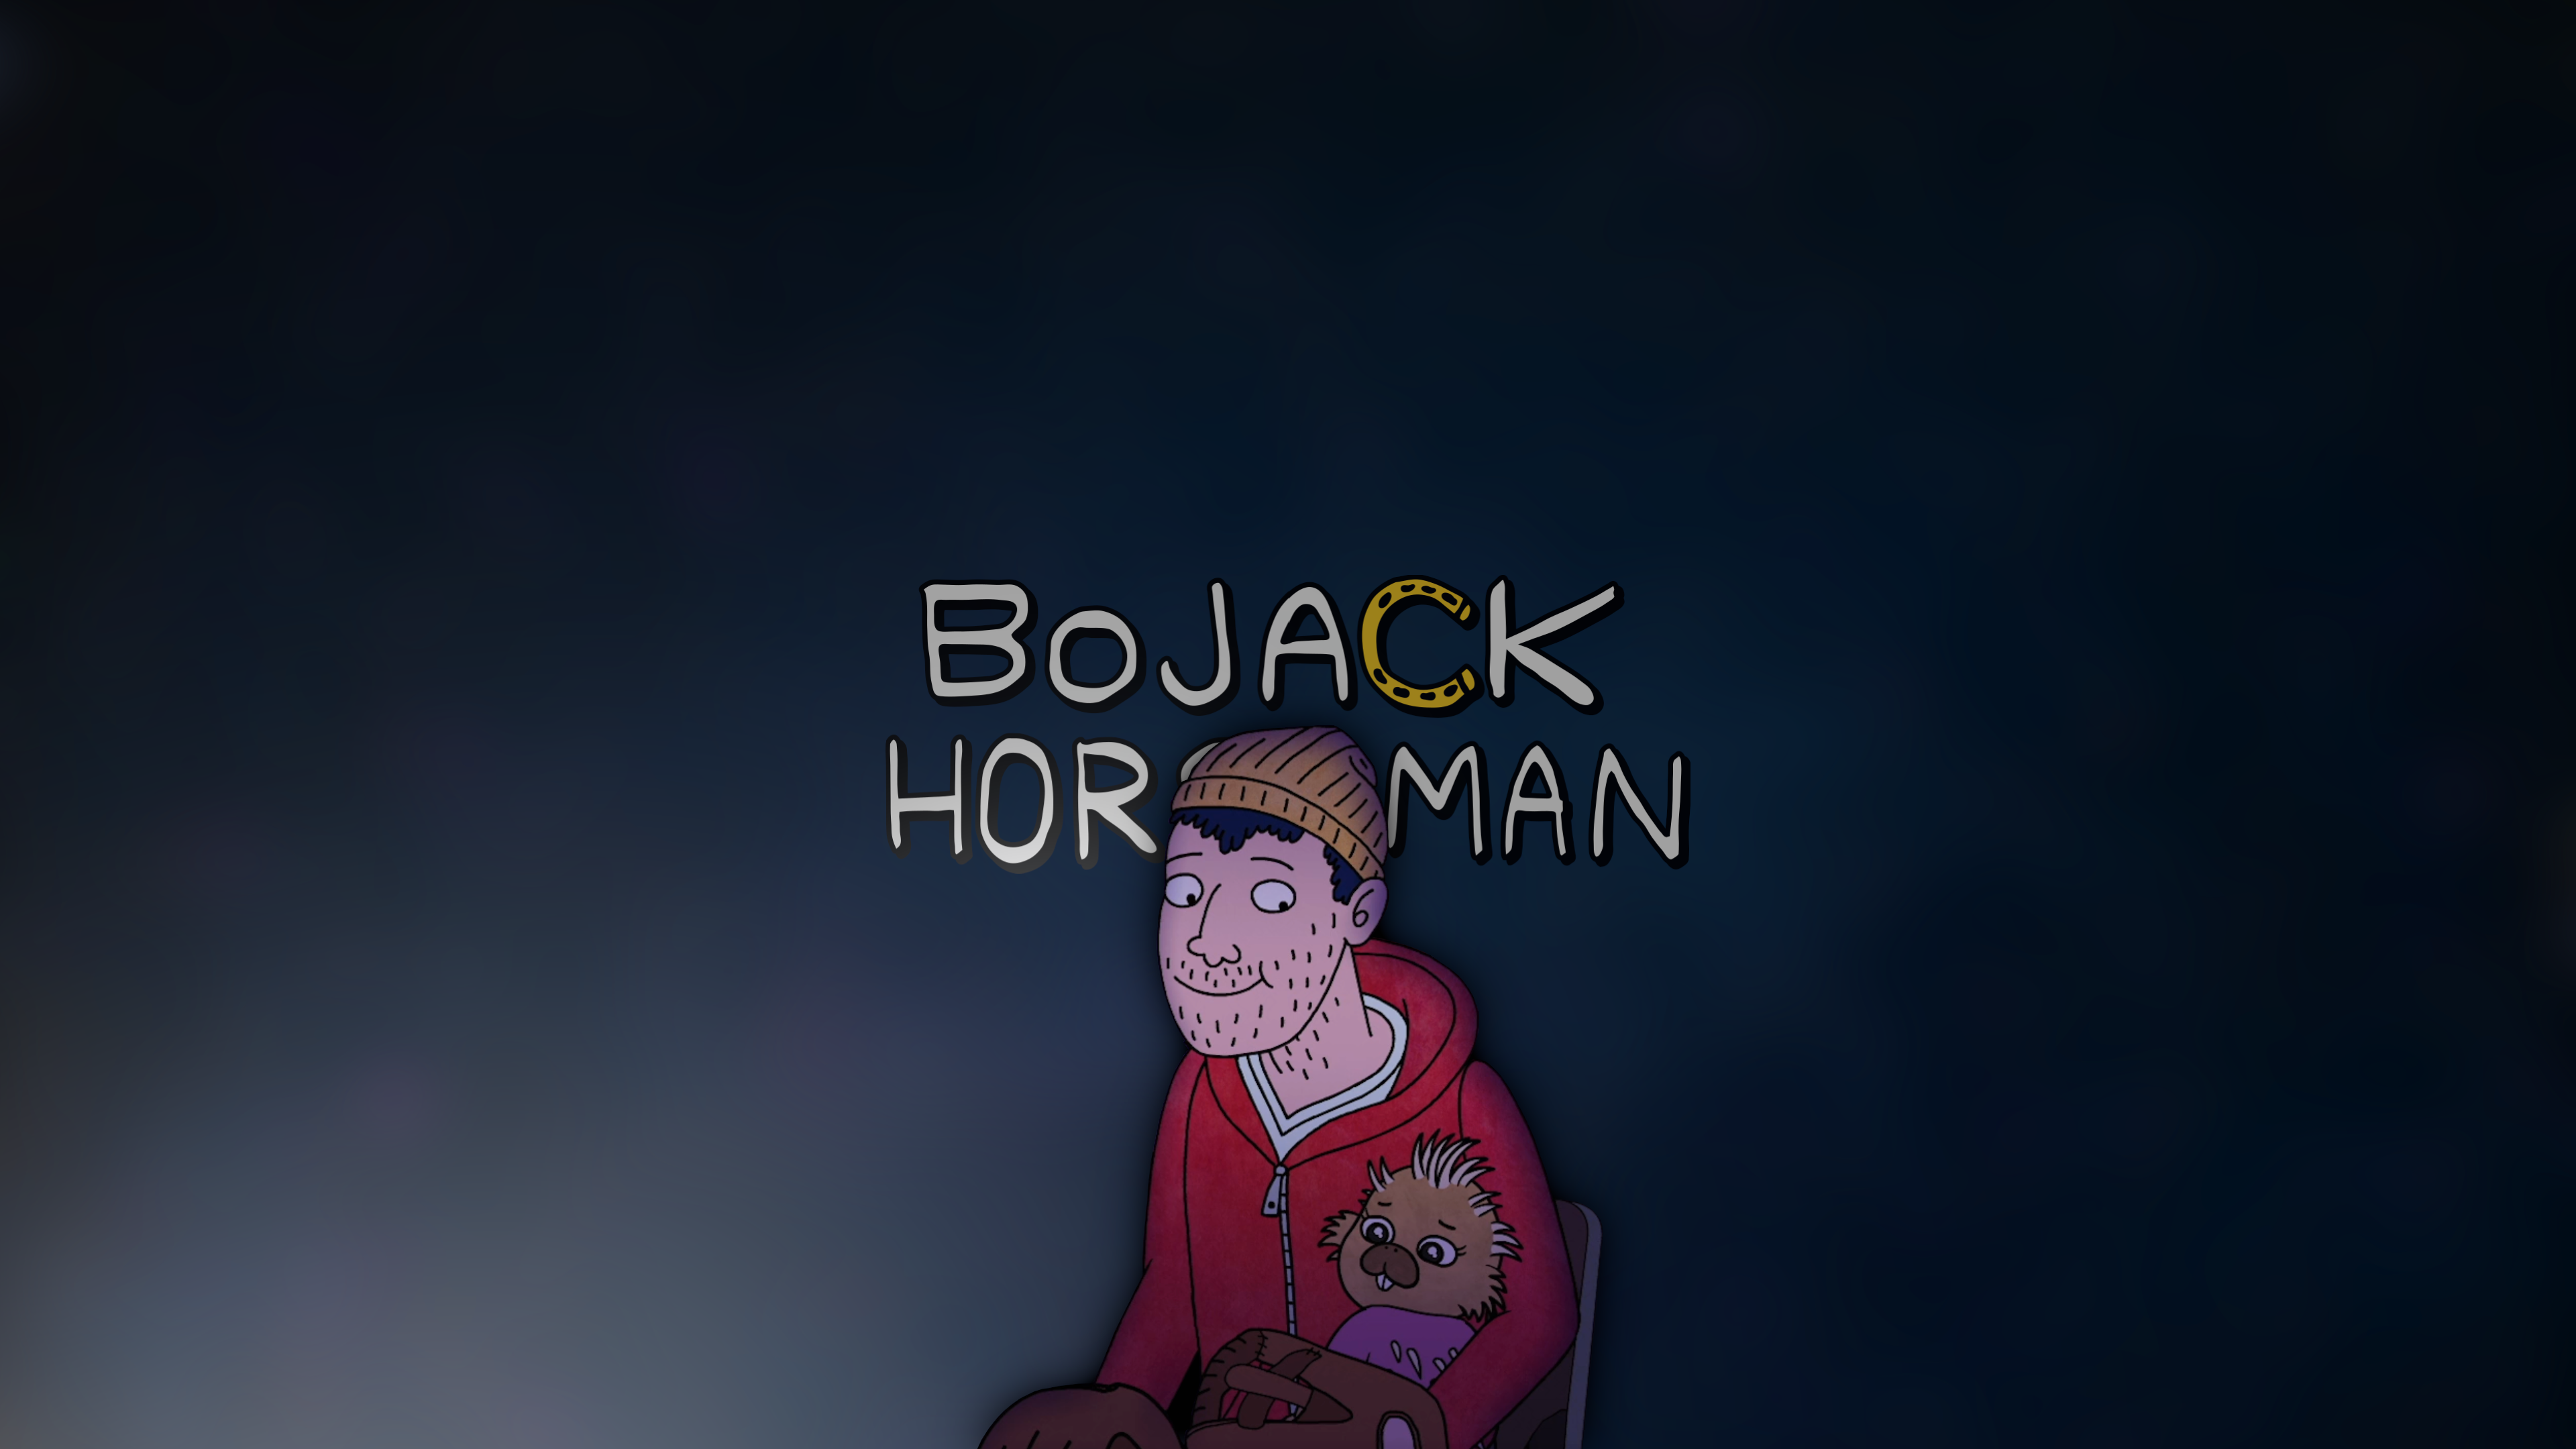 It S So Amazing To Hold A Baby And Look At It Sleep And Think This Is A Perfect Thing Todd And Ruthie 4k Wallpaper R Bojackhorseman Bojack Horseman Know Your Meme